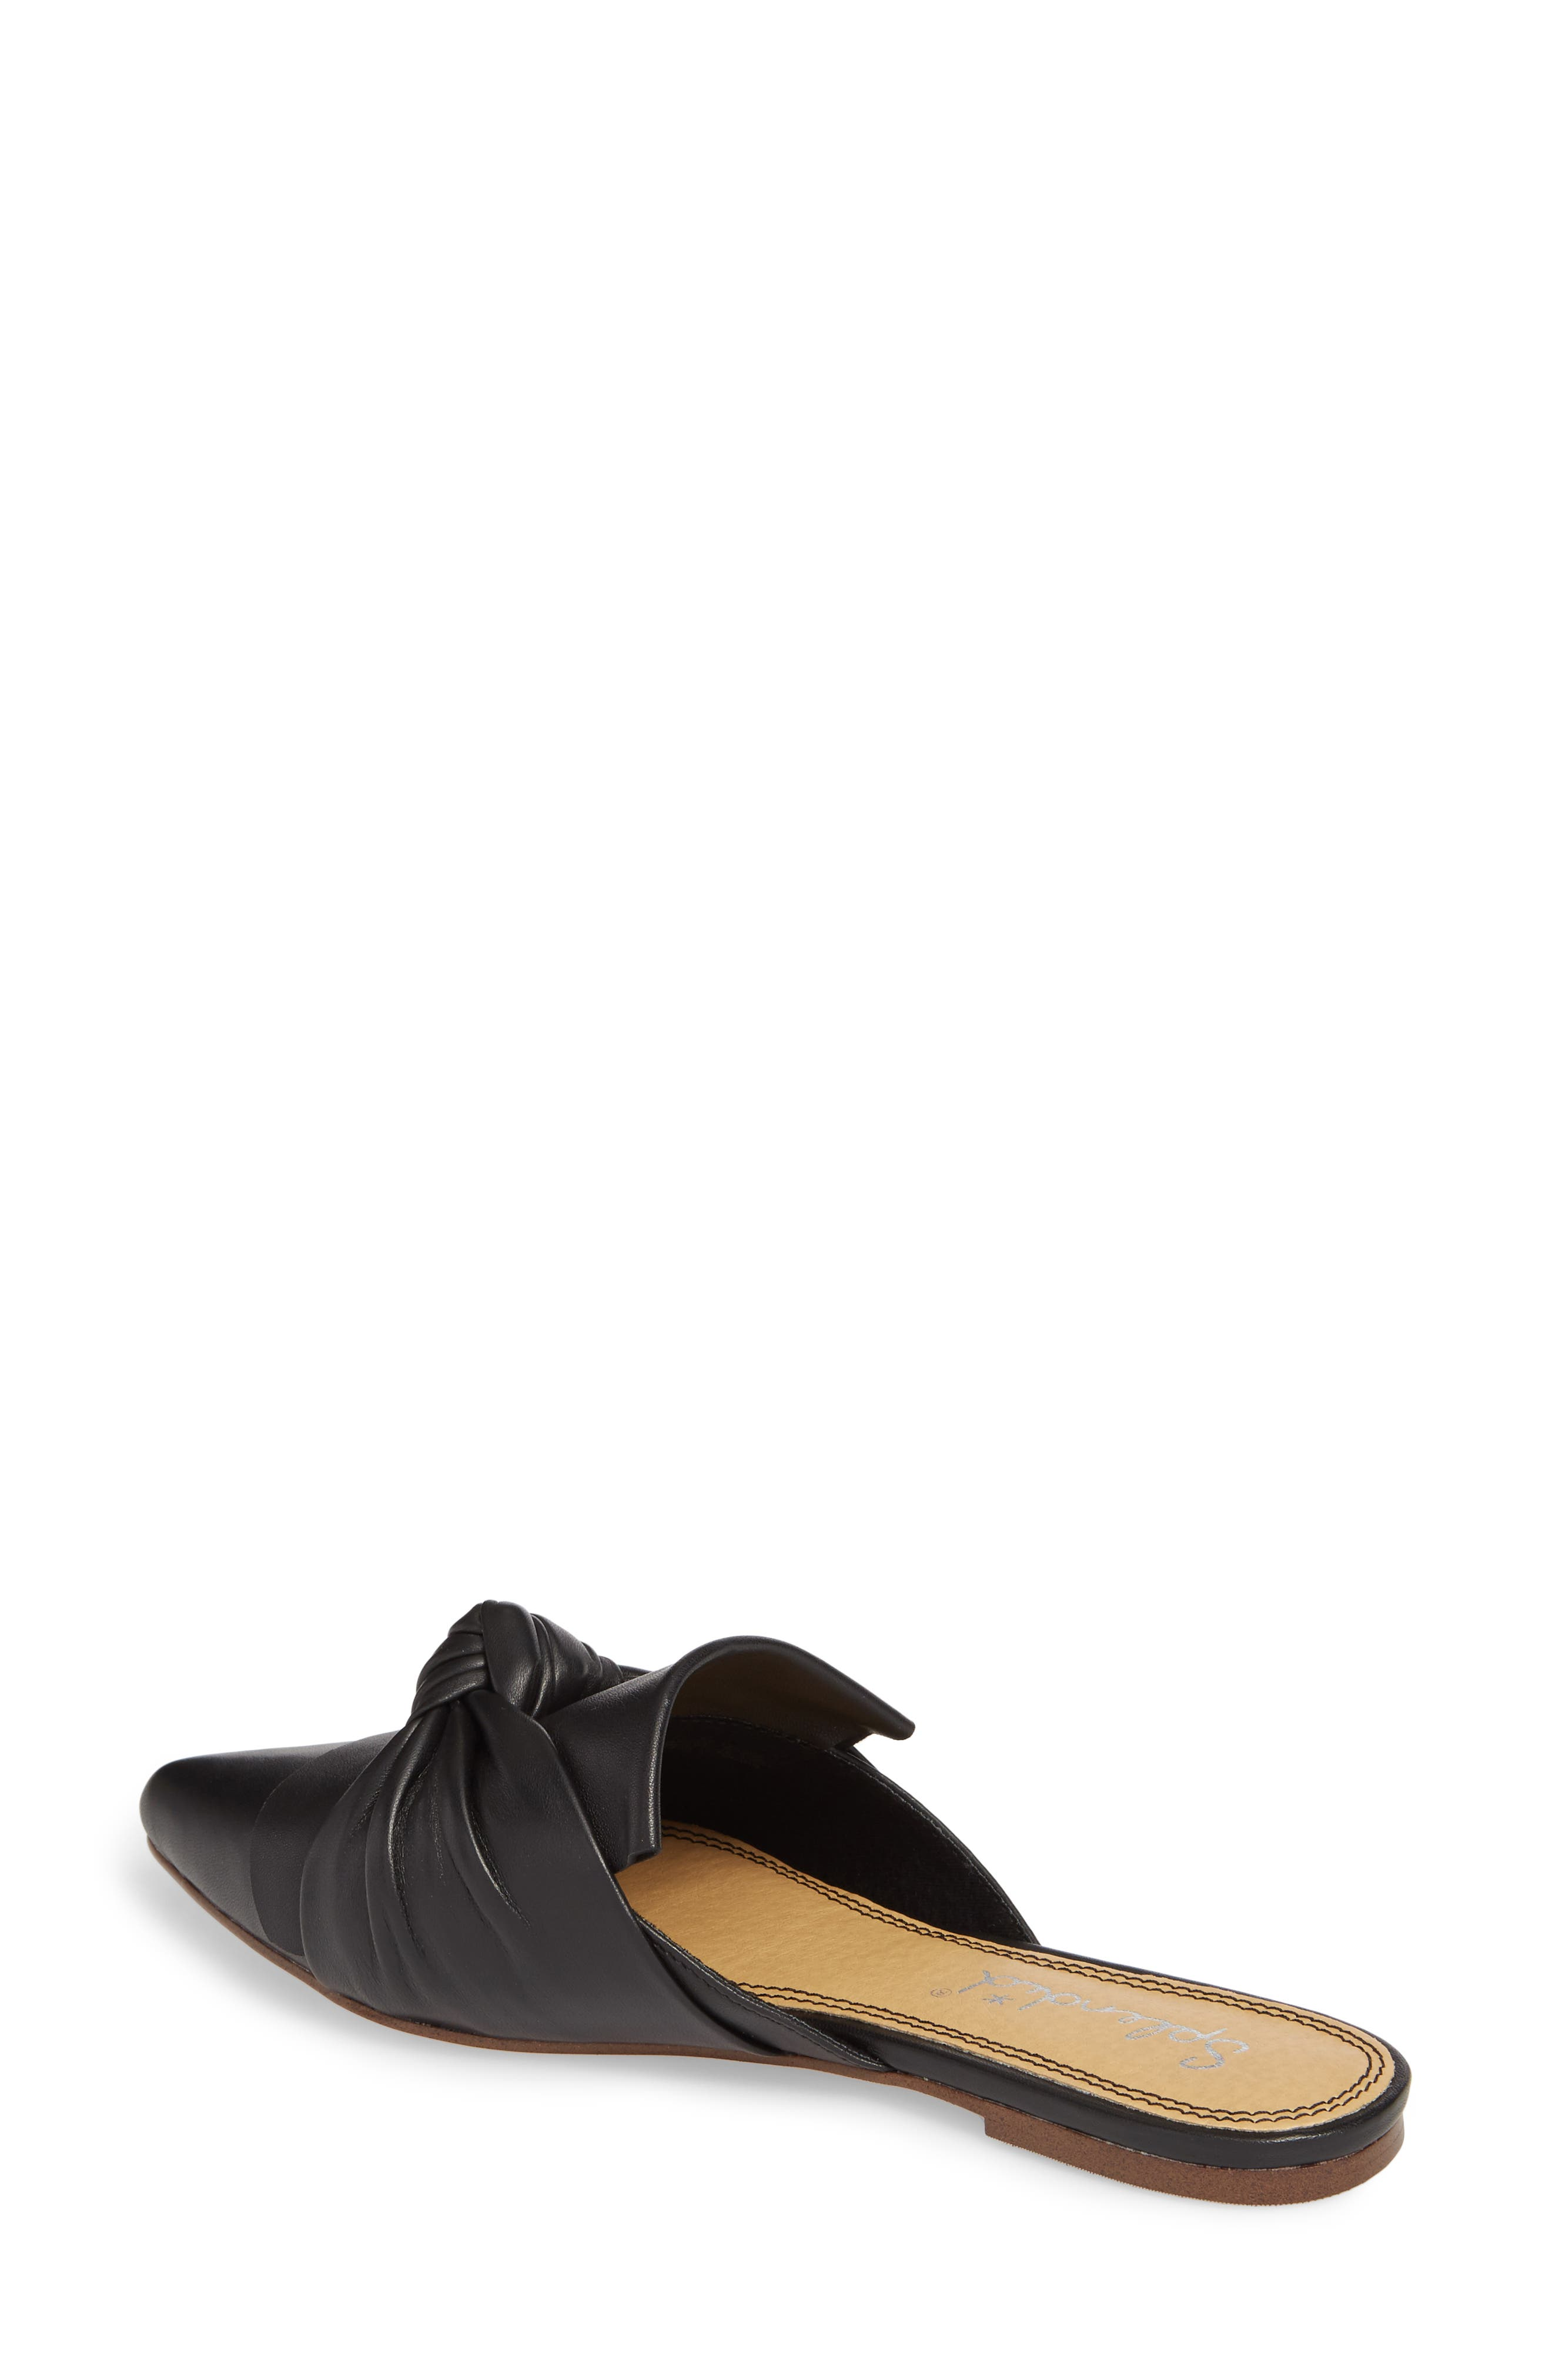 Bassett Knotted Pointy Toe Mule,                             Alternate thumbnail 2, color,                             Black Leather